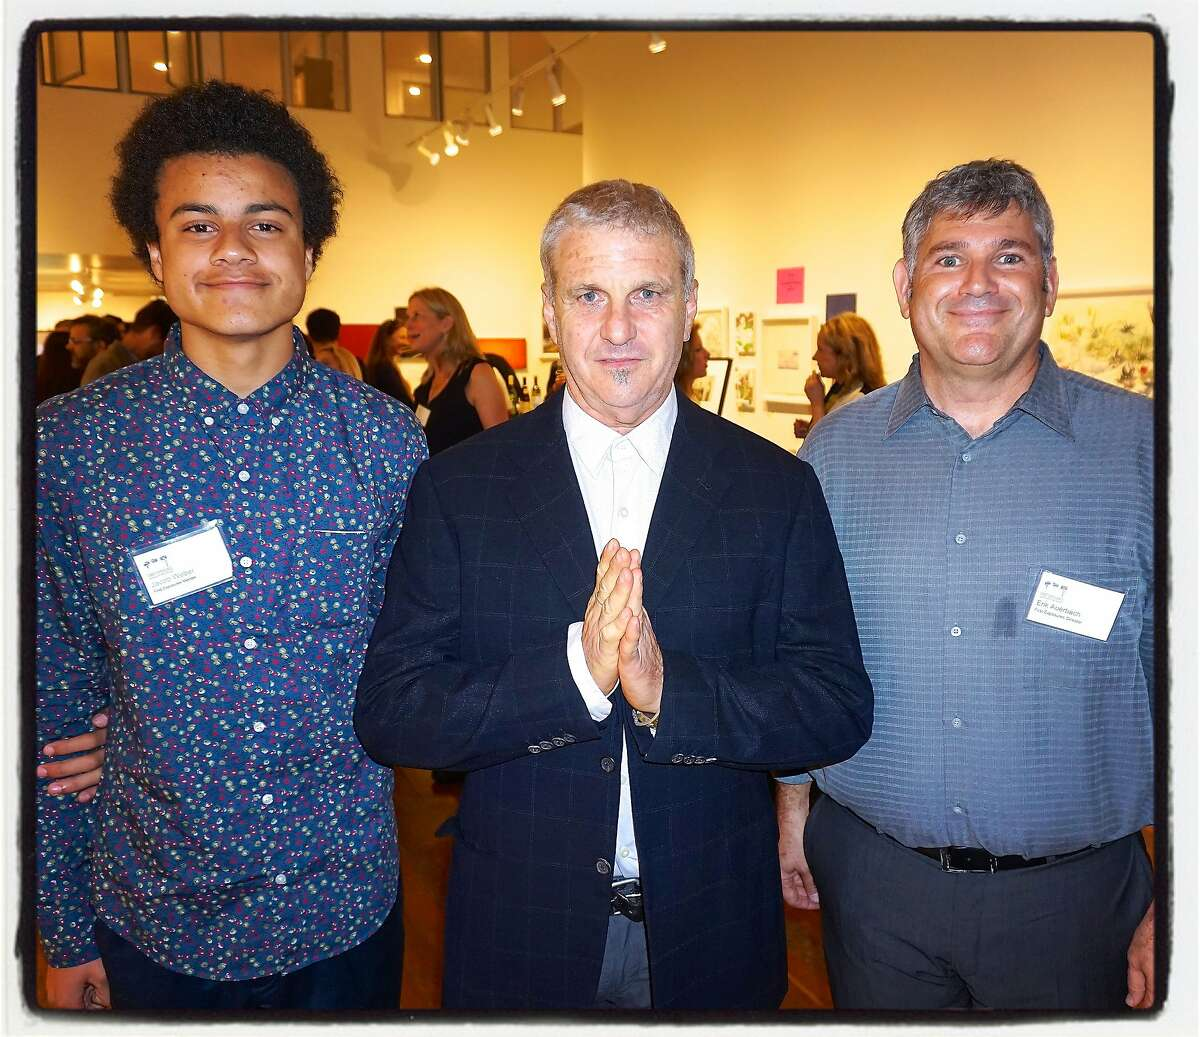 First Exposures mentee Jacob Weber (left) with photographer Jim Goldman and Executive Director Erik Auerbach at Root Division Gallery. Nov 2015.